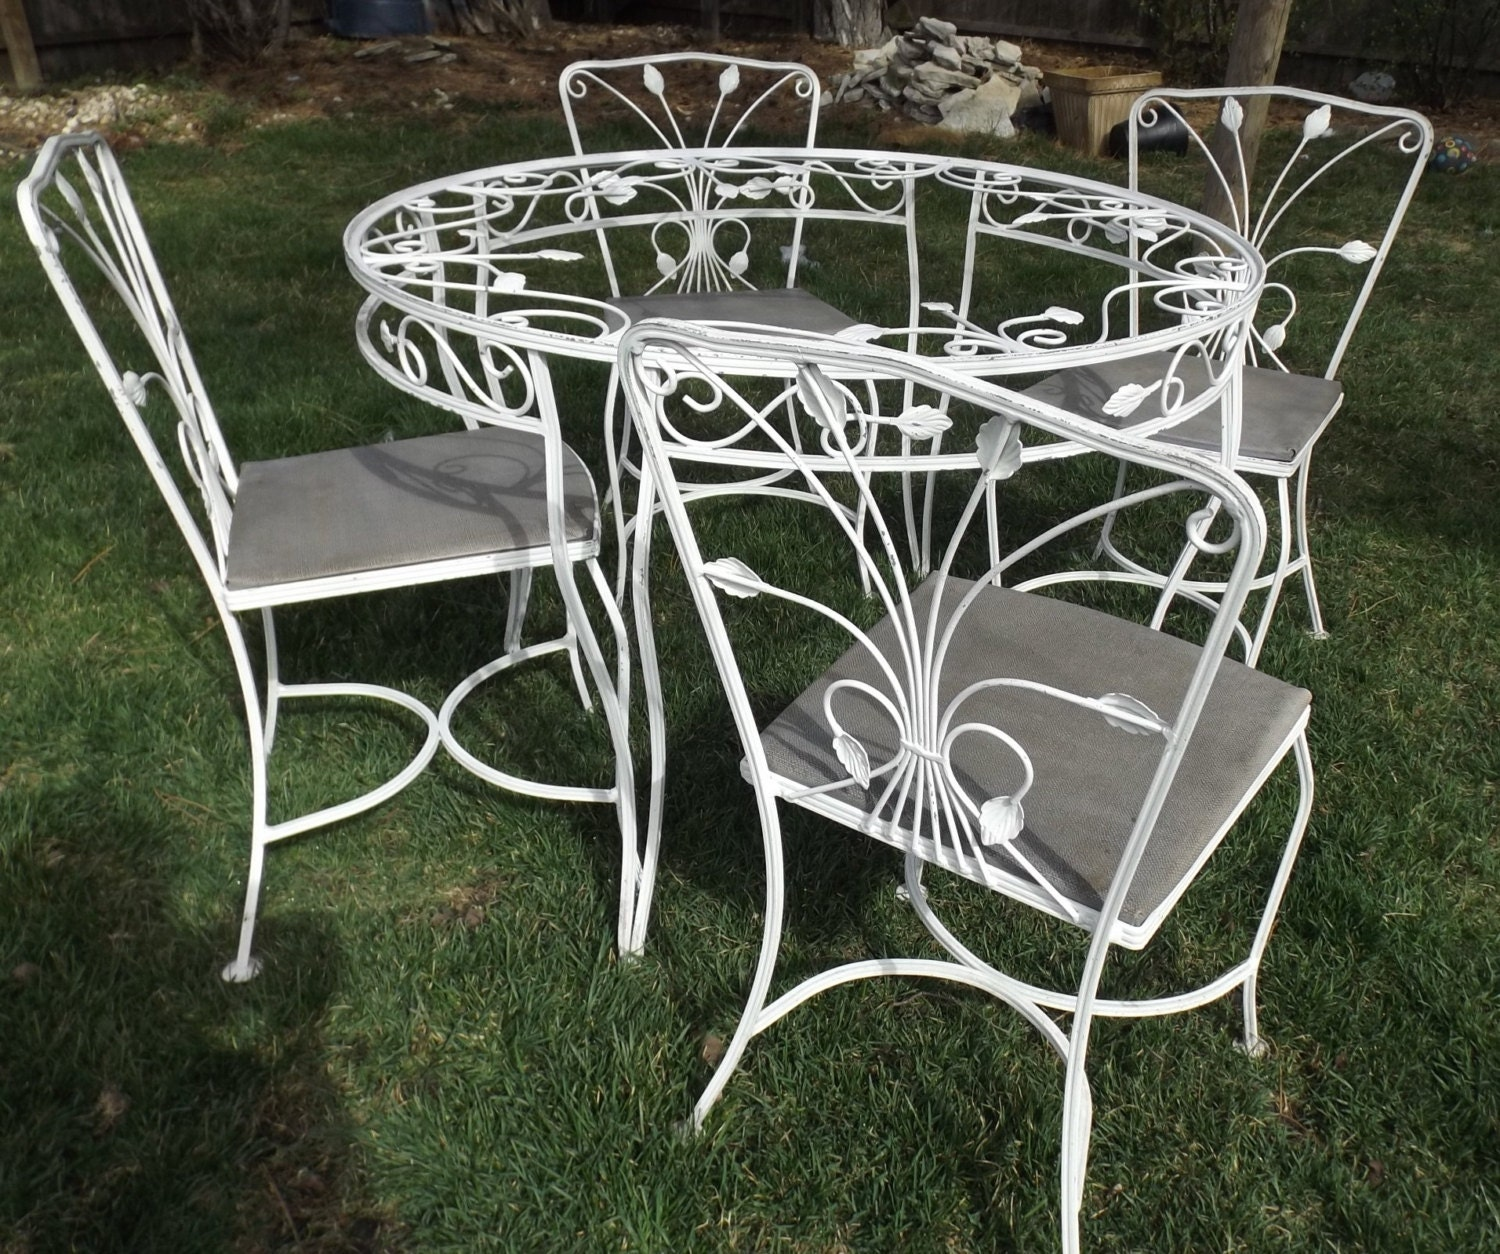 Vintage wrought iron white garden patio table 4 chairs ivy Vintage metal garden furniture